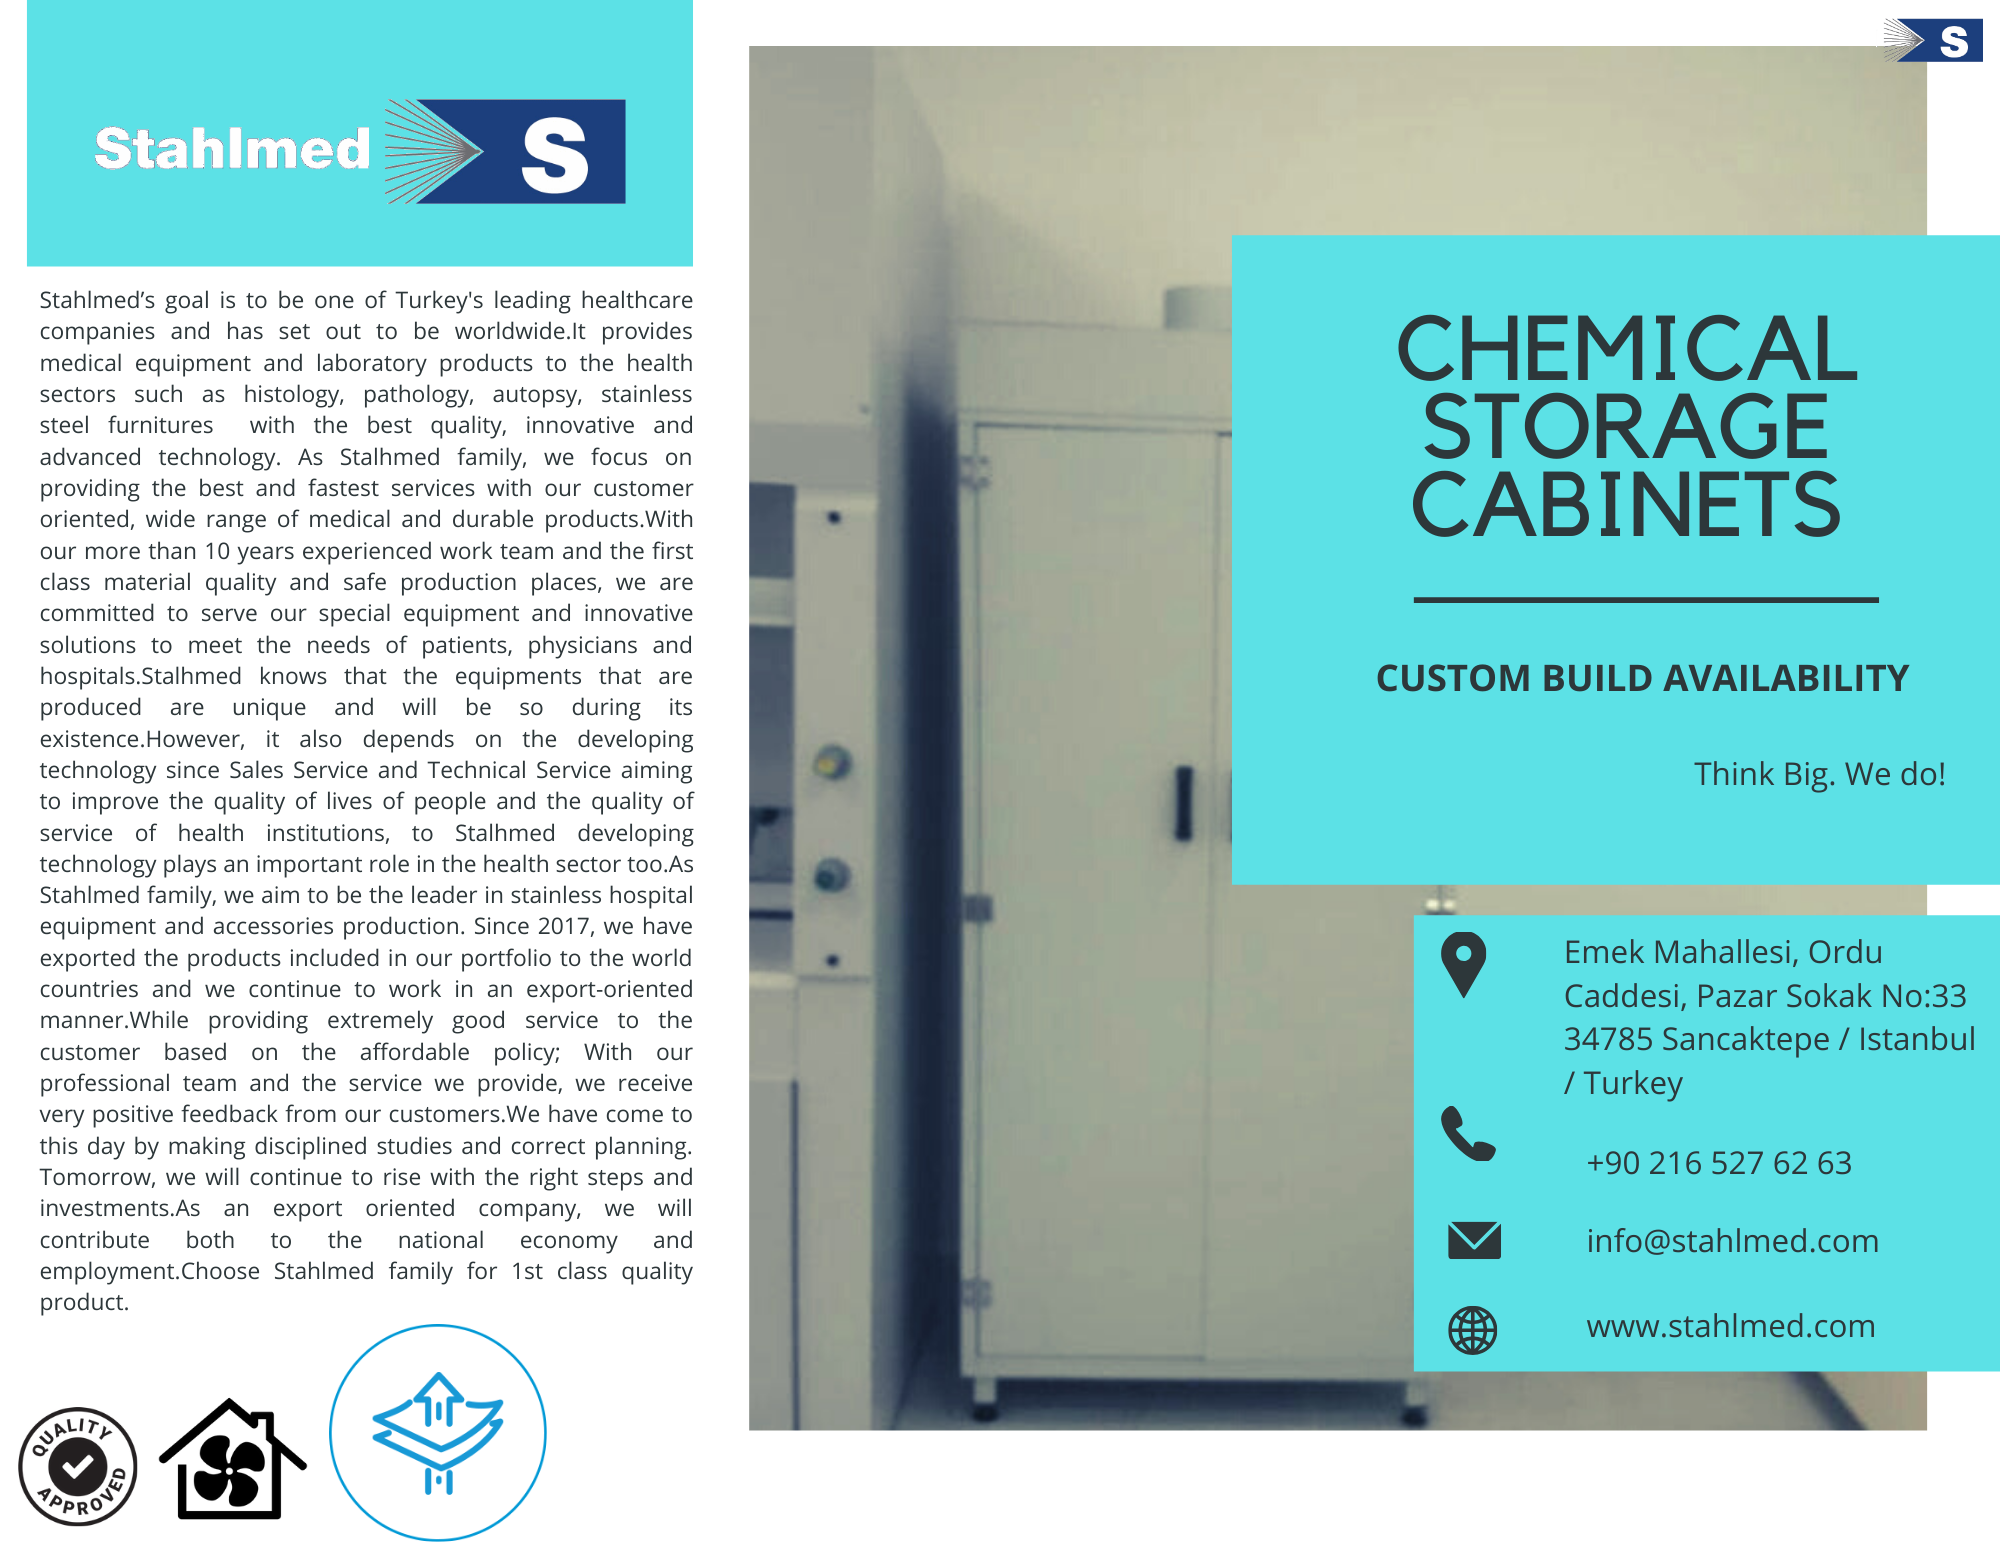 Chemical Storage Cabinet | Stahlmed